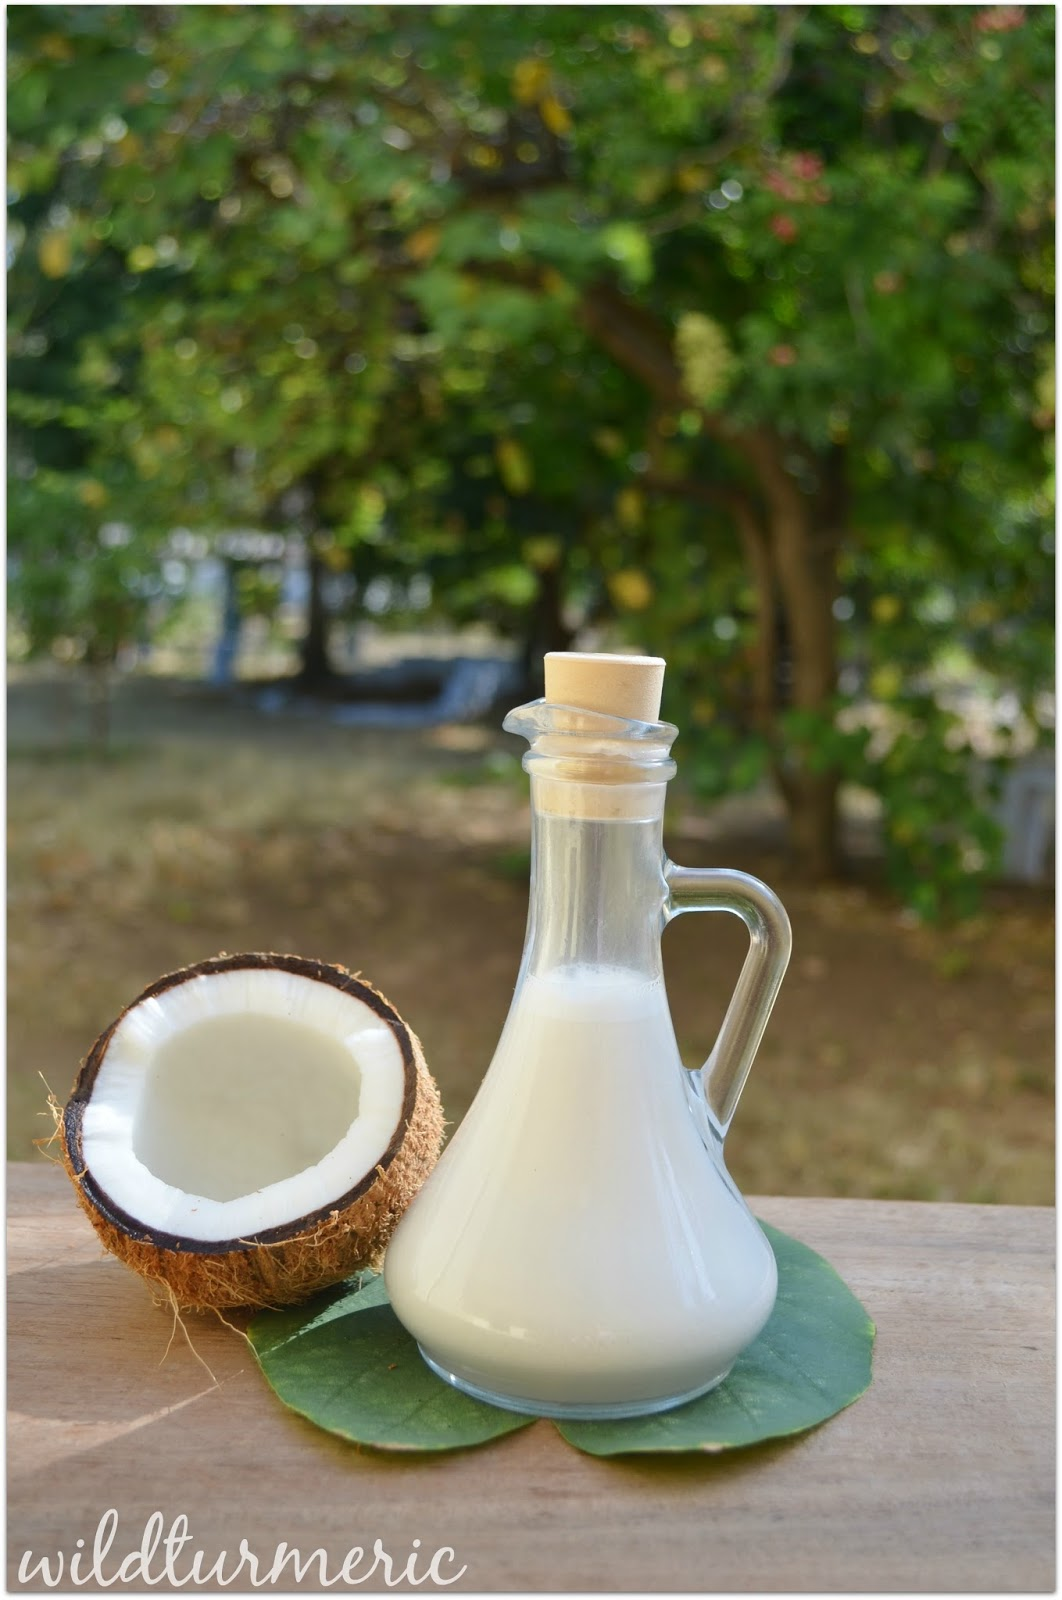 8 Top Nutritional Benefits Of Coconut Milk For Skin, Hair & Health